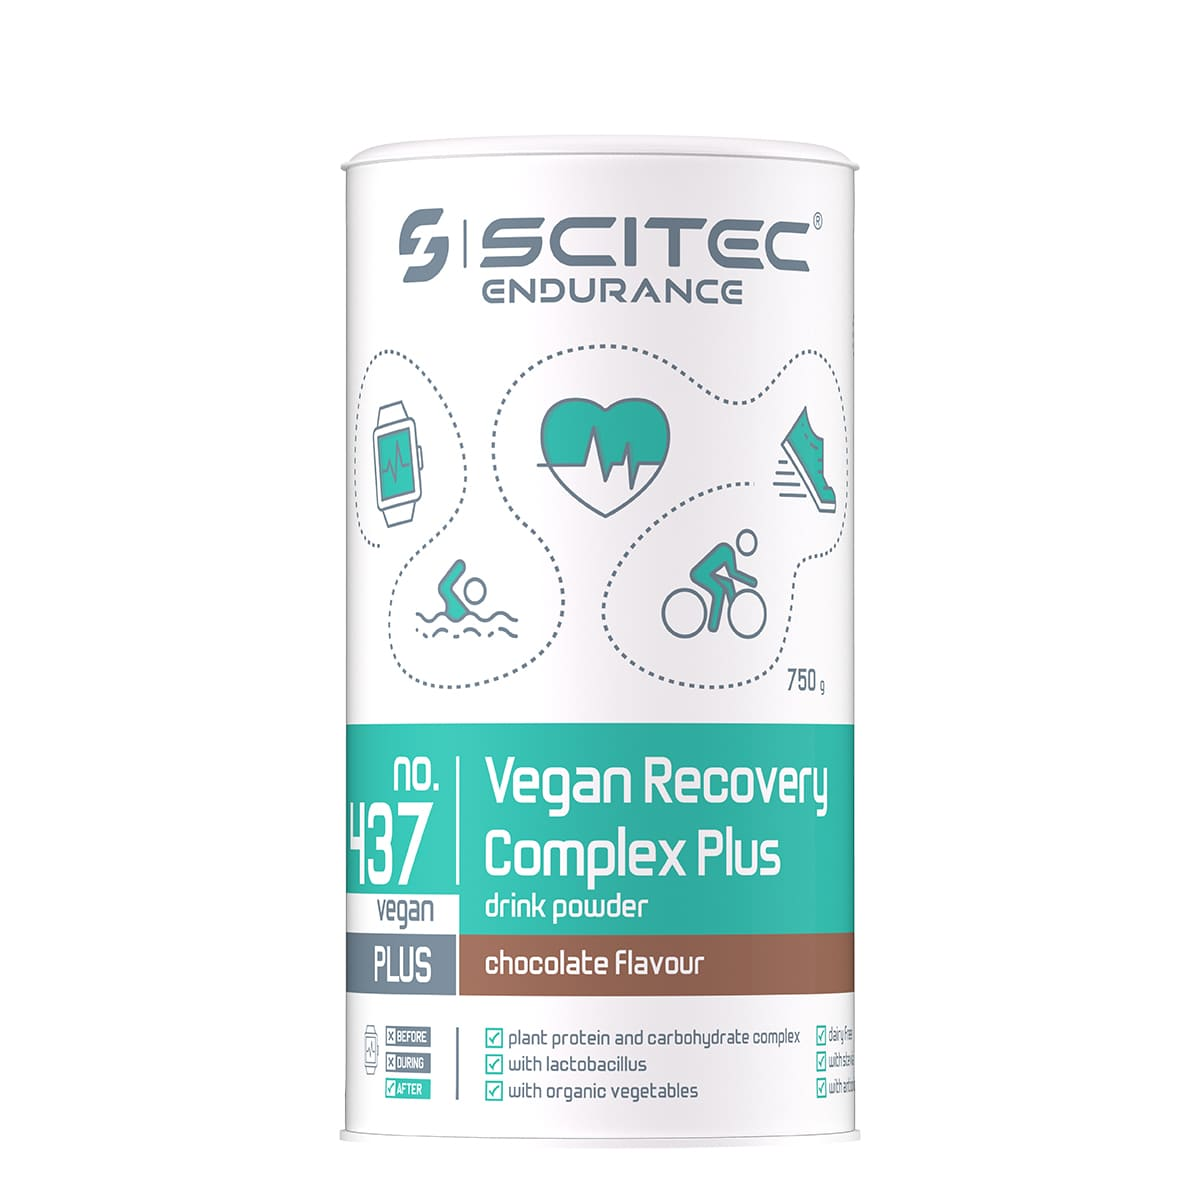 Vegan Recovery Complex Plus, 750g